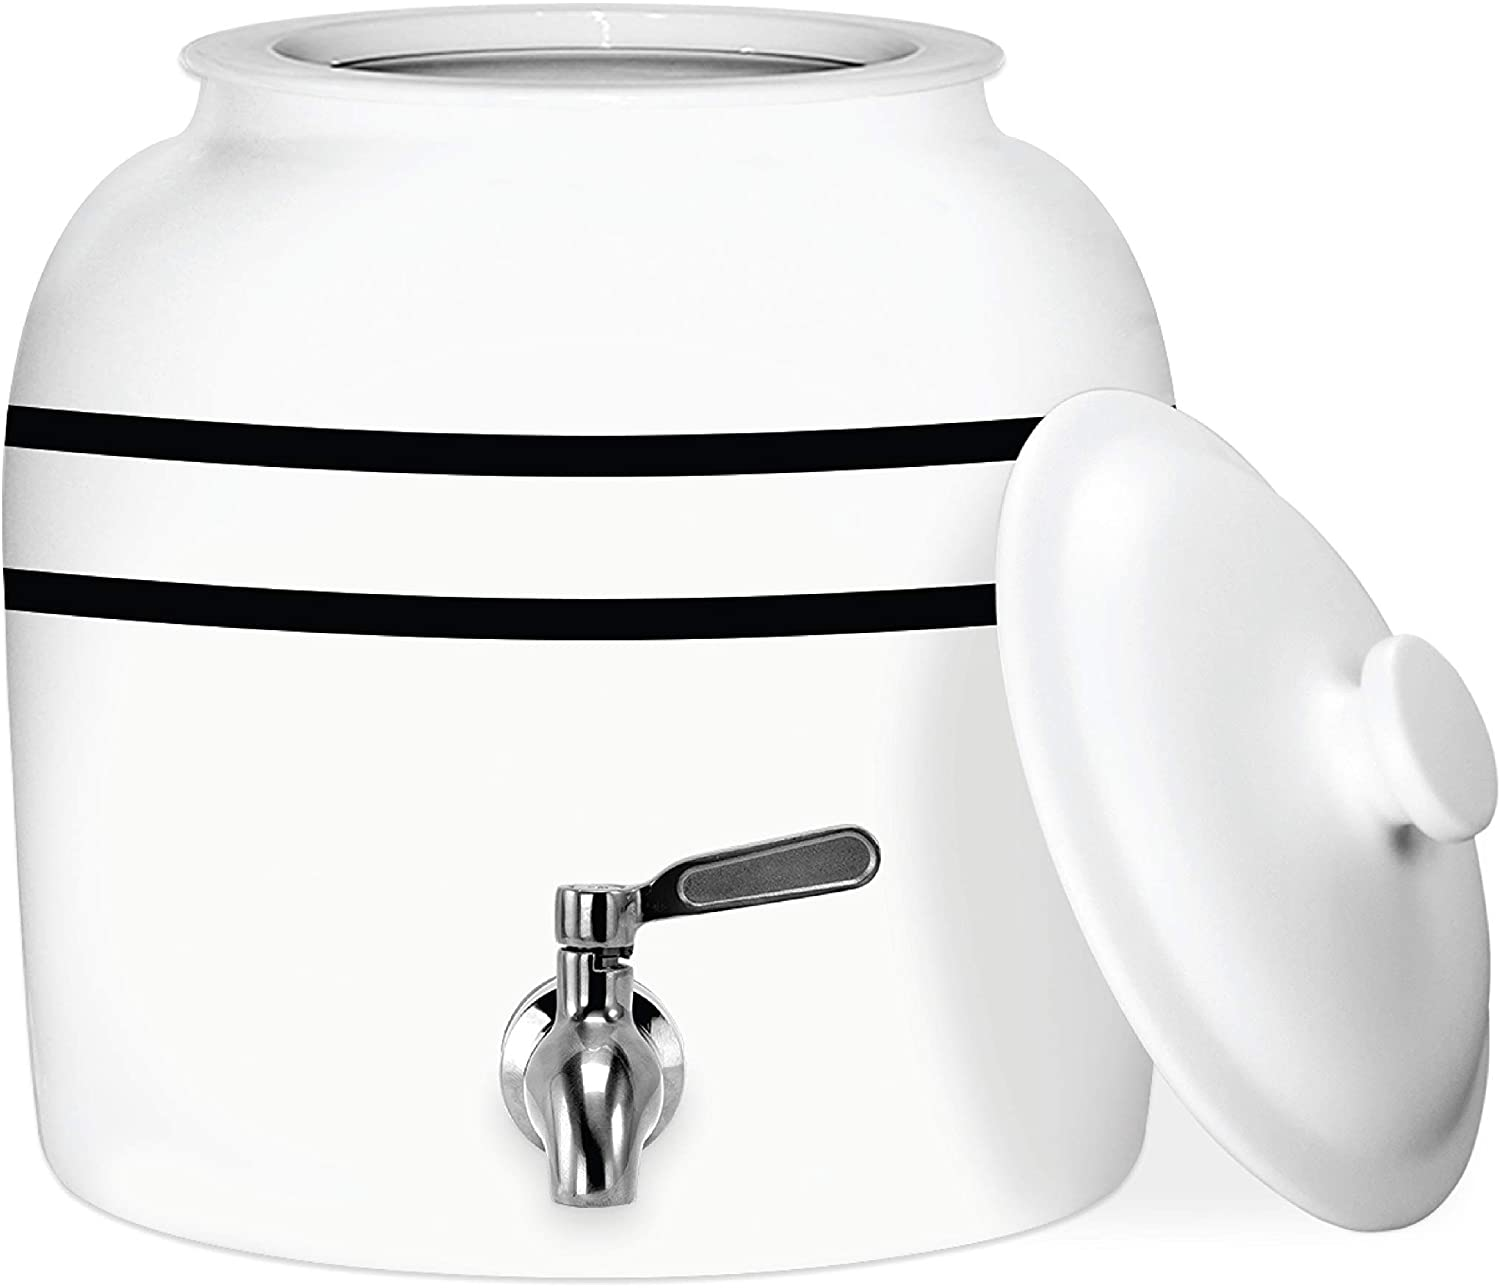 Geo Sports Porcelain Ceramic Crock Water Dispenser, Stainless Steel Faucet, Valve and Lid Included. Fits 3 to 5 Gallon Jugs. BPA & Lead Free (Black Stripe)